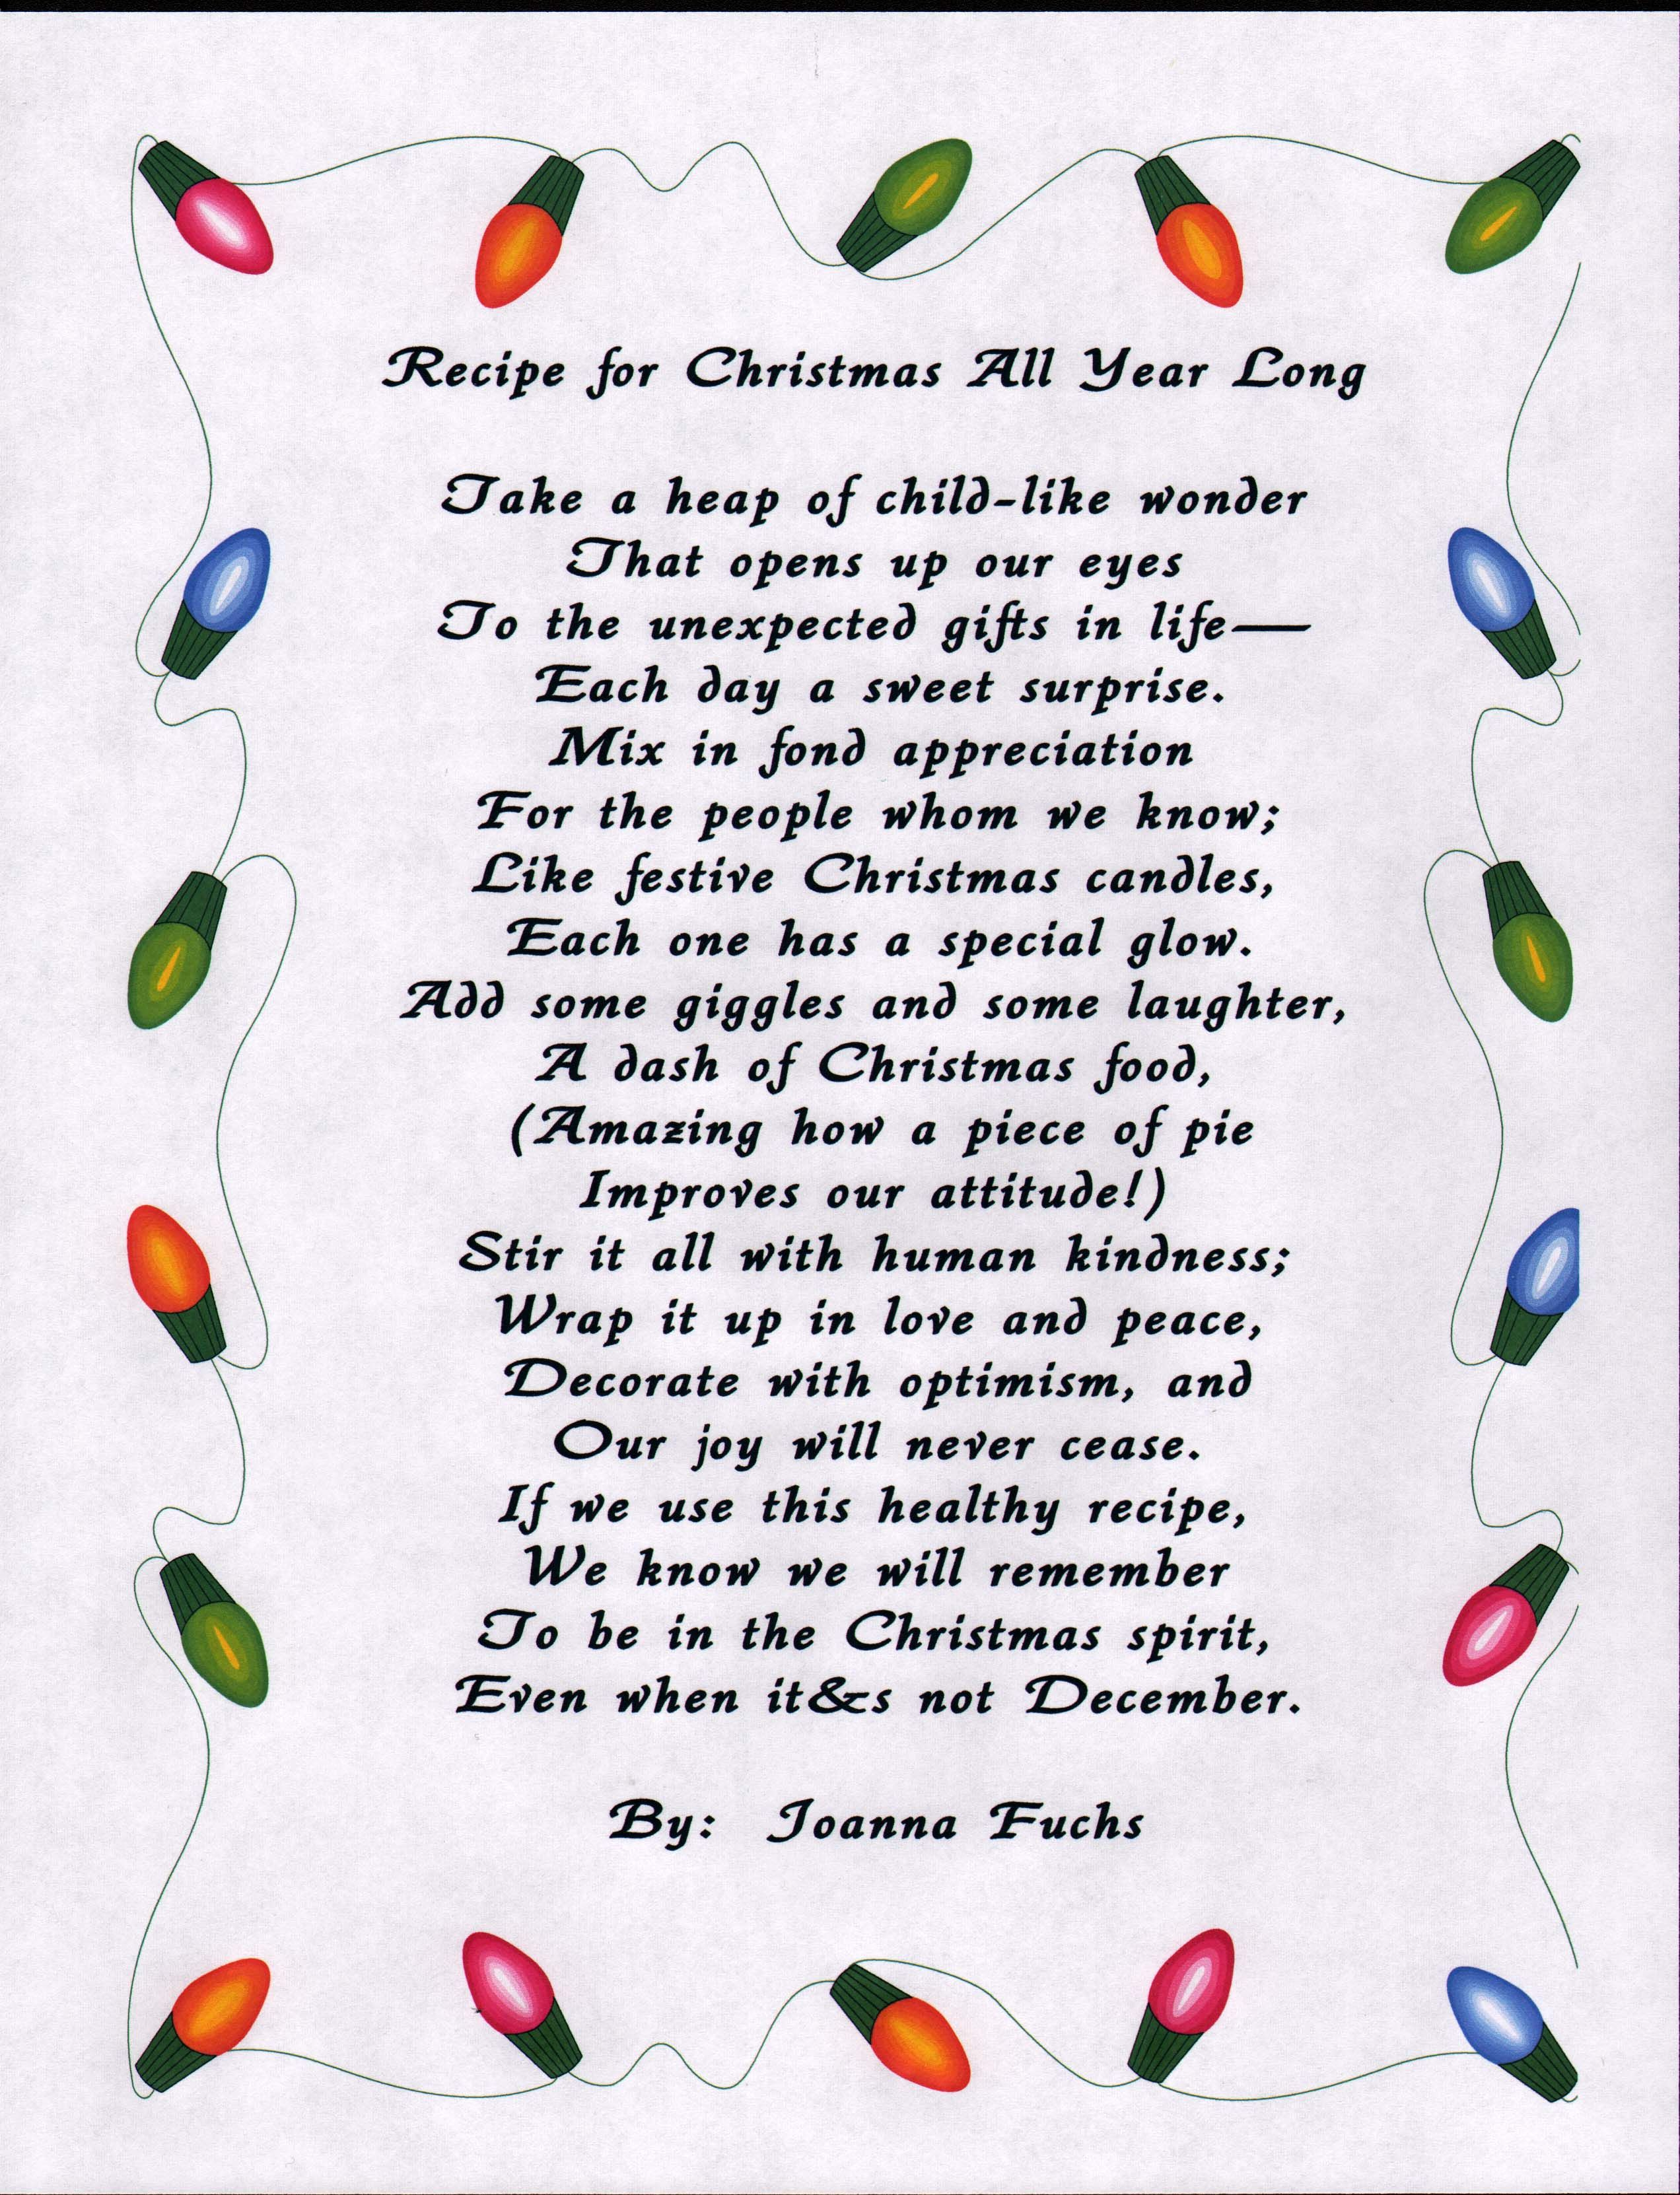 Pin by Rick White on christmas | Pinterest | Poem, Bible school ...